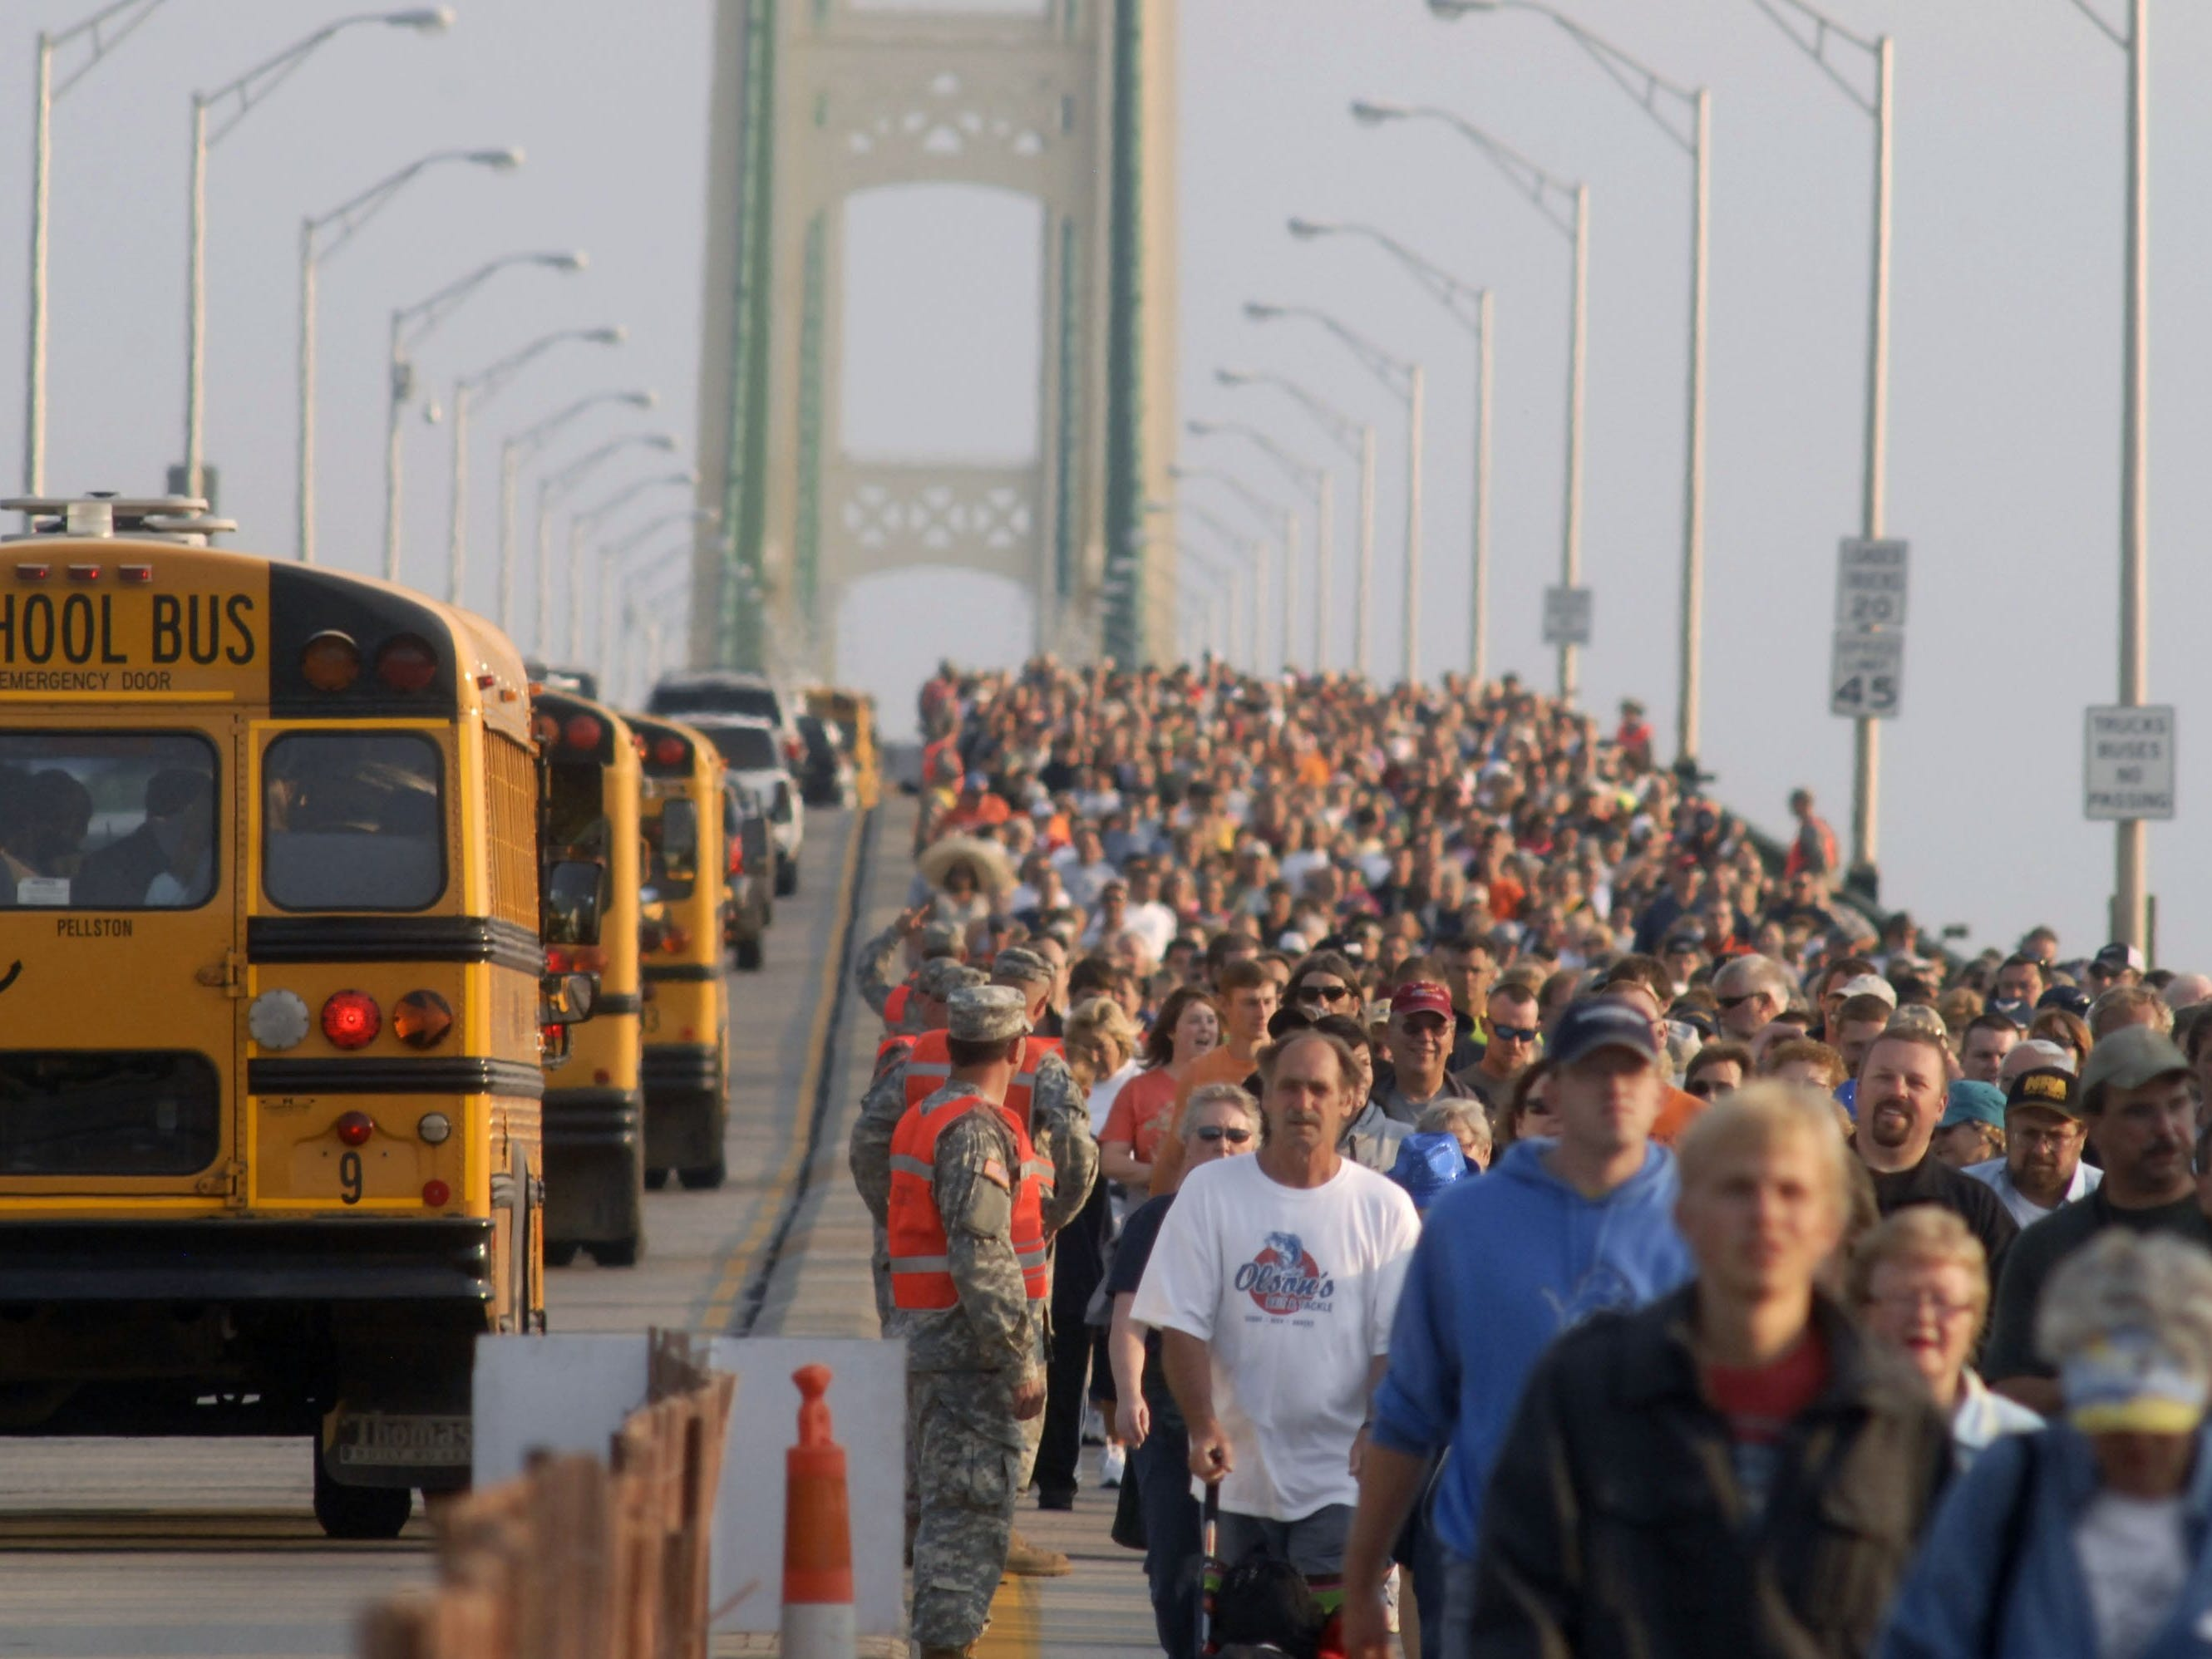 Thousands of people head south during the annual Labor Day Mackinac Bridge Walk, Monday, Sept. 3, 2012. Gov. Rick Snyder has led thousands of walkers and runners across the bridge for one of Michigan's most popular Labor Day traditions.